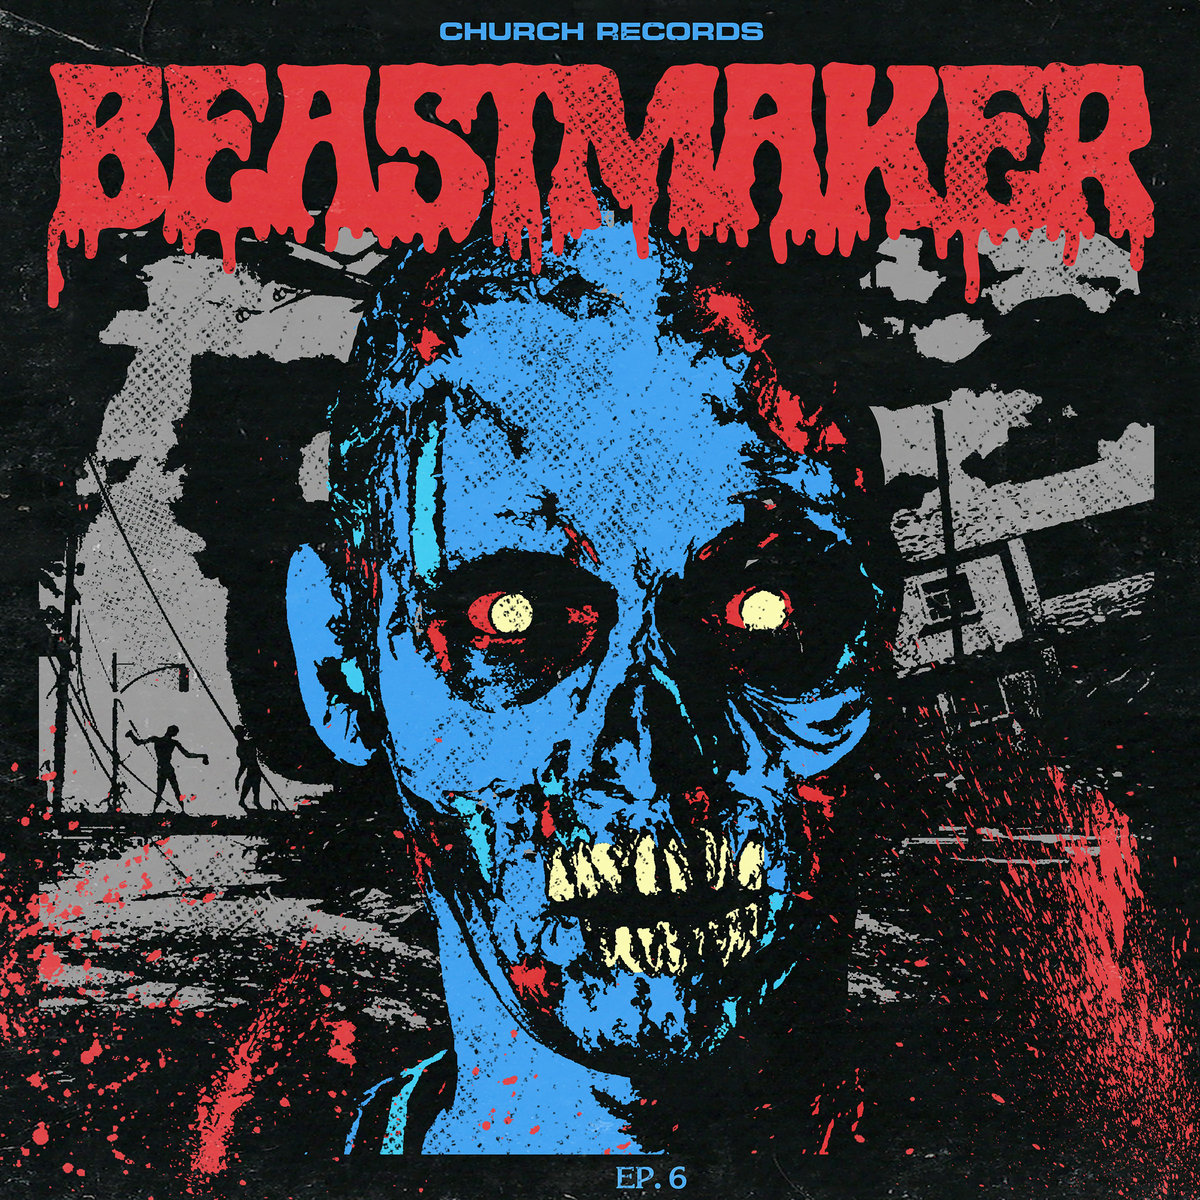 Beastmaker EP-6 Born Of Evil The Chosen One Thirteens The Hour Midwich